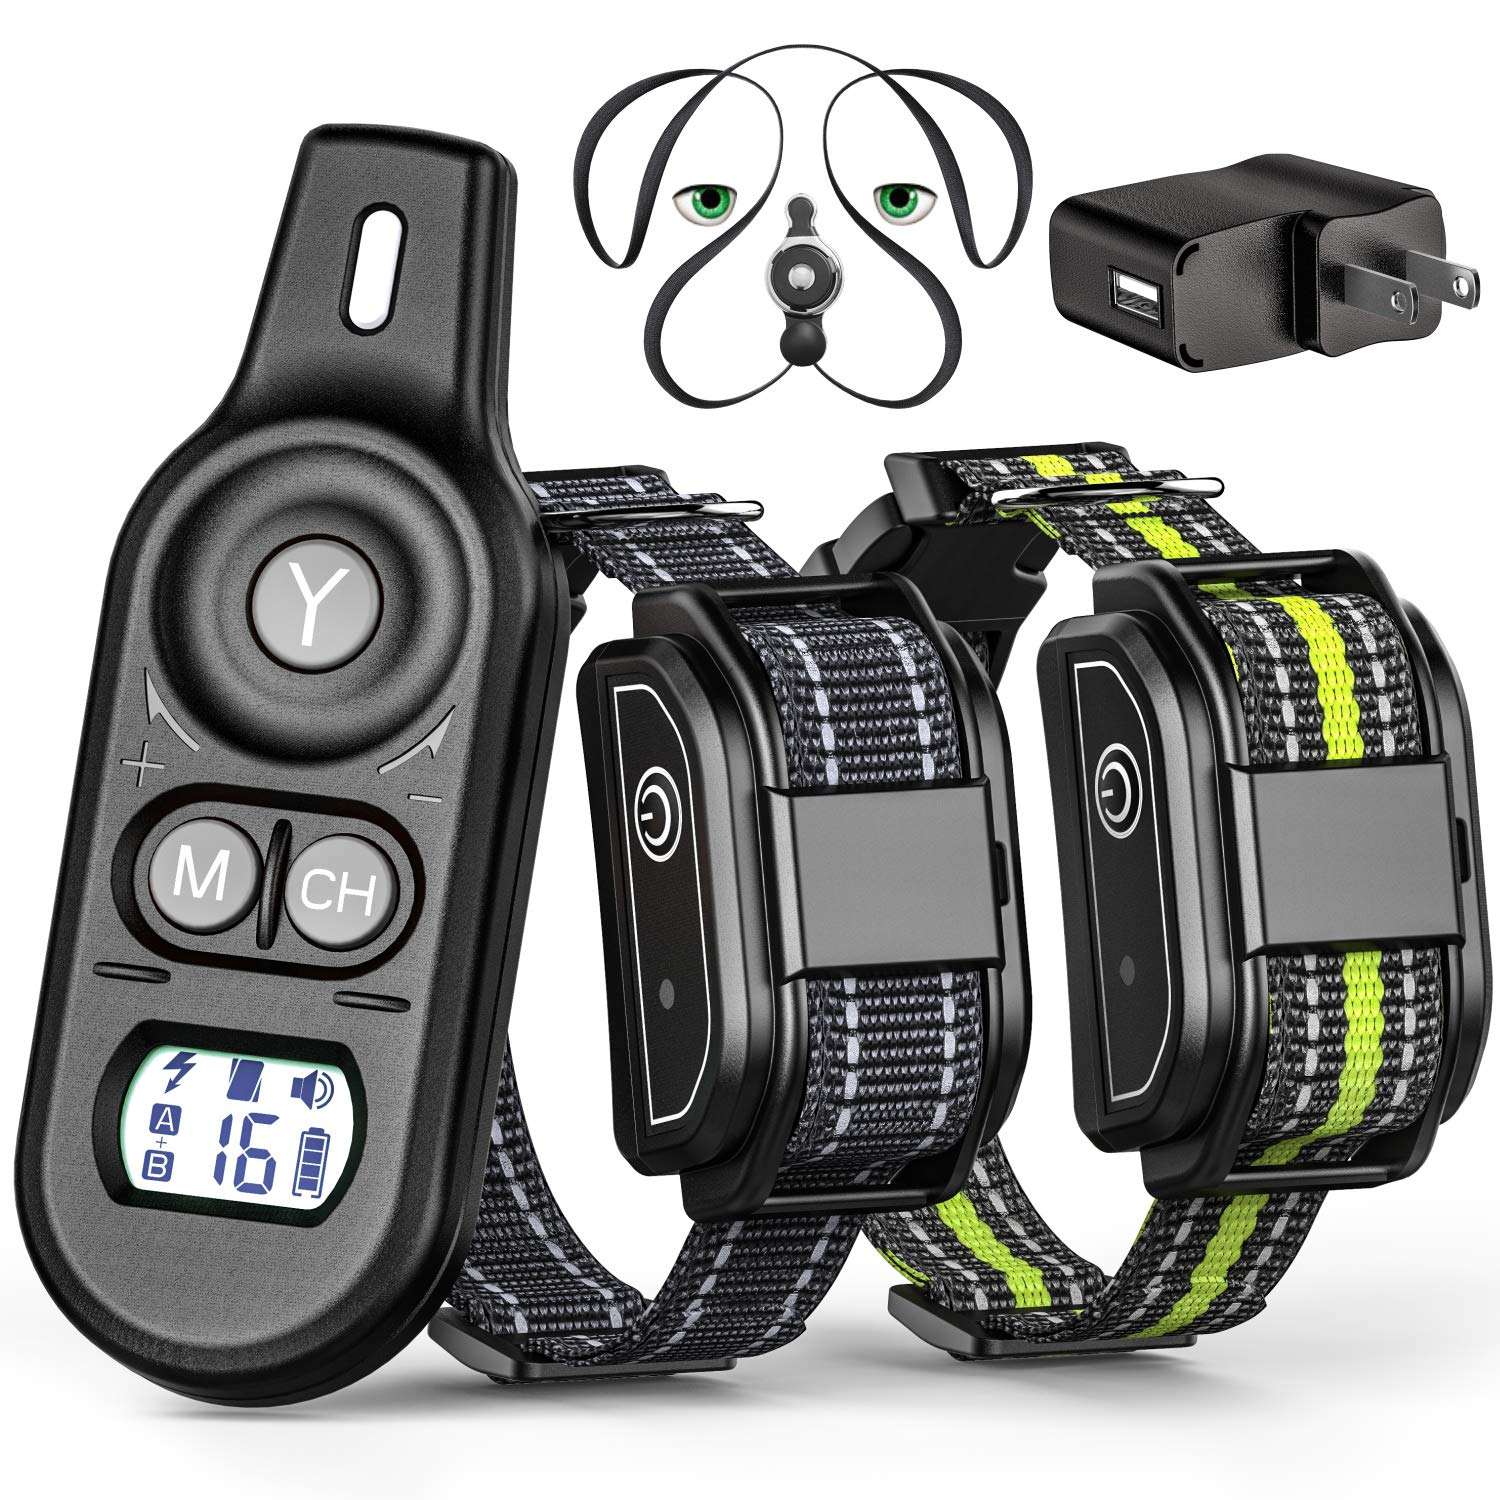 Veckle Dog Training Collar, 2019 Upgraded Rechargeable Shock Collar for 2 Dogs Waterproof Dog Shock Collar with Remote, Beep, Charging Seat, Vibration Dog Electronic Collar for Large and Medium Dogs